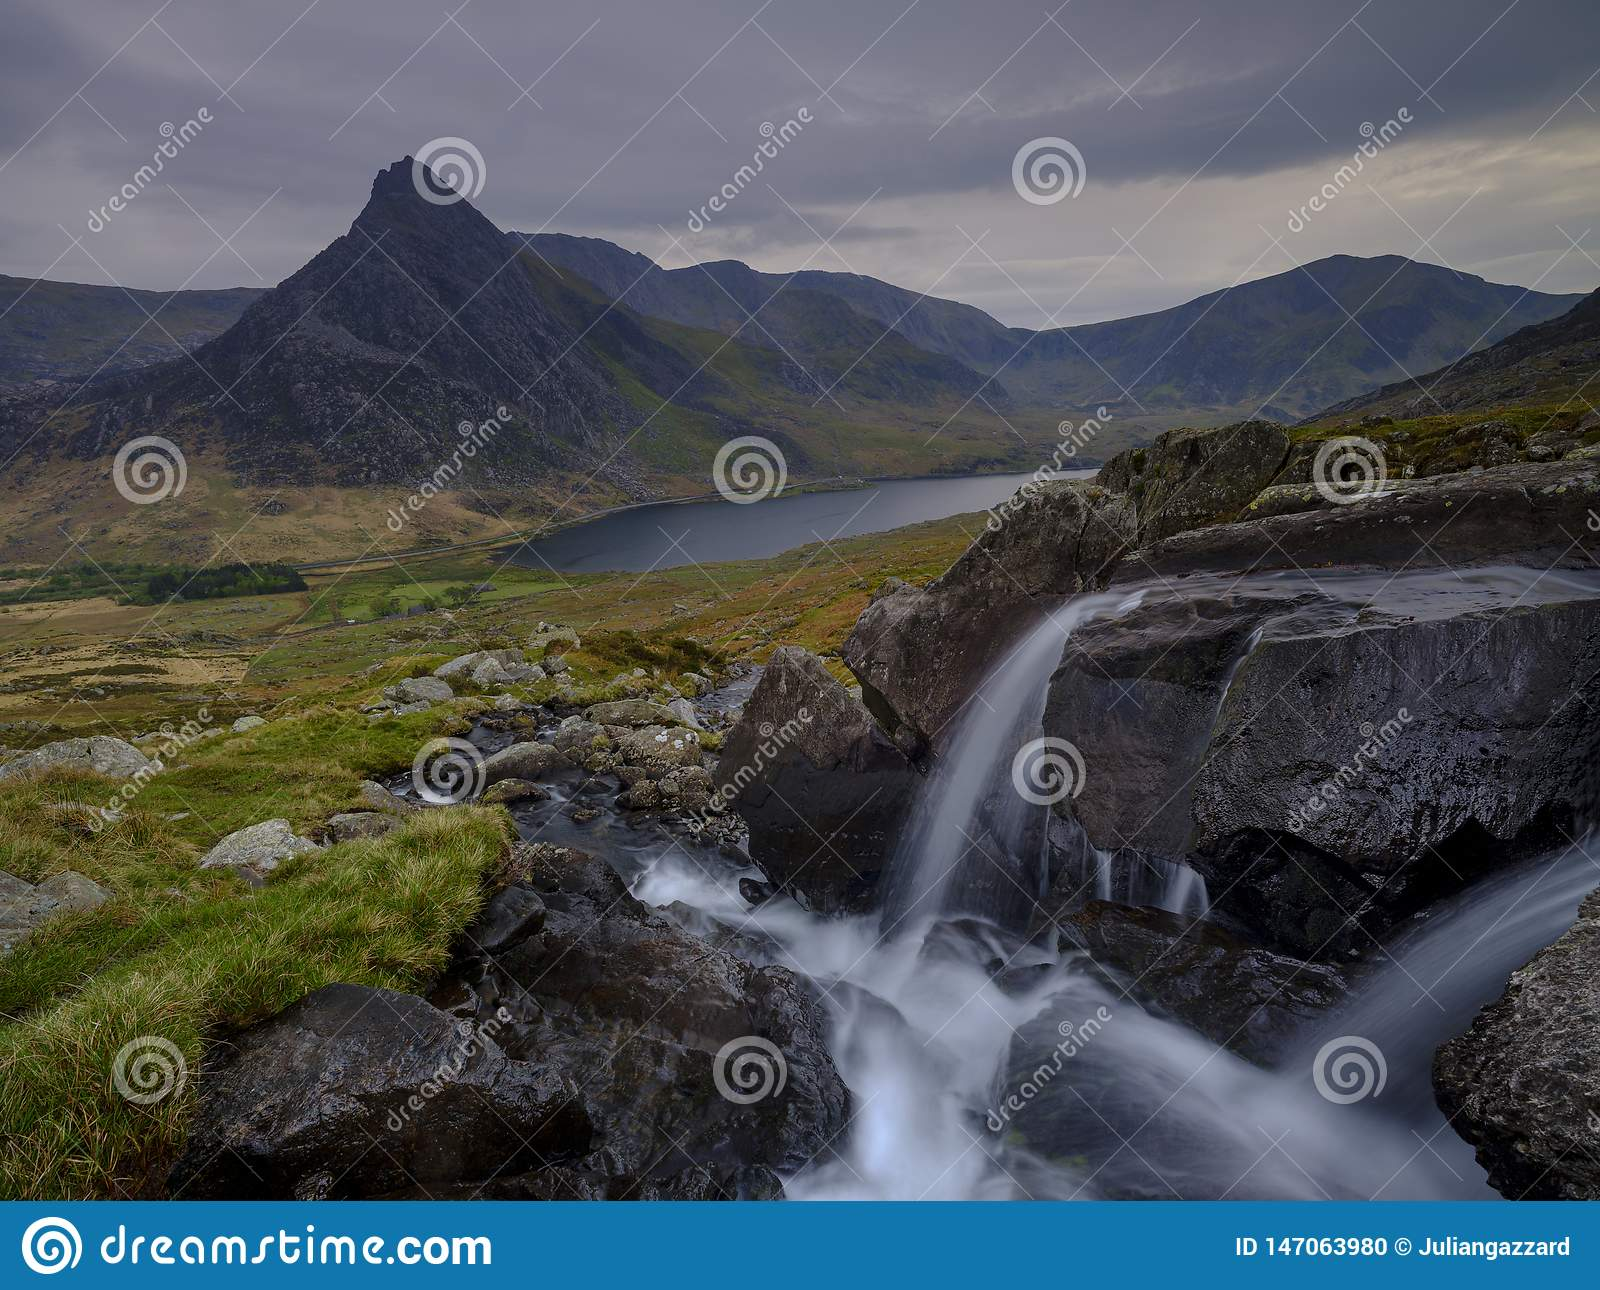 Tryfan in spring with the Afon Lloer in flow over the waterfalls, Wales